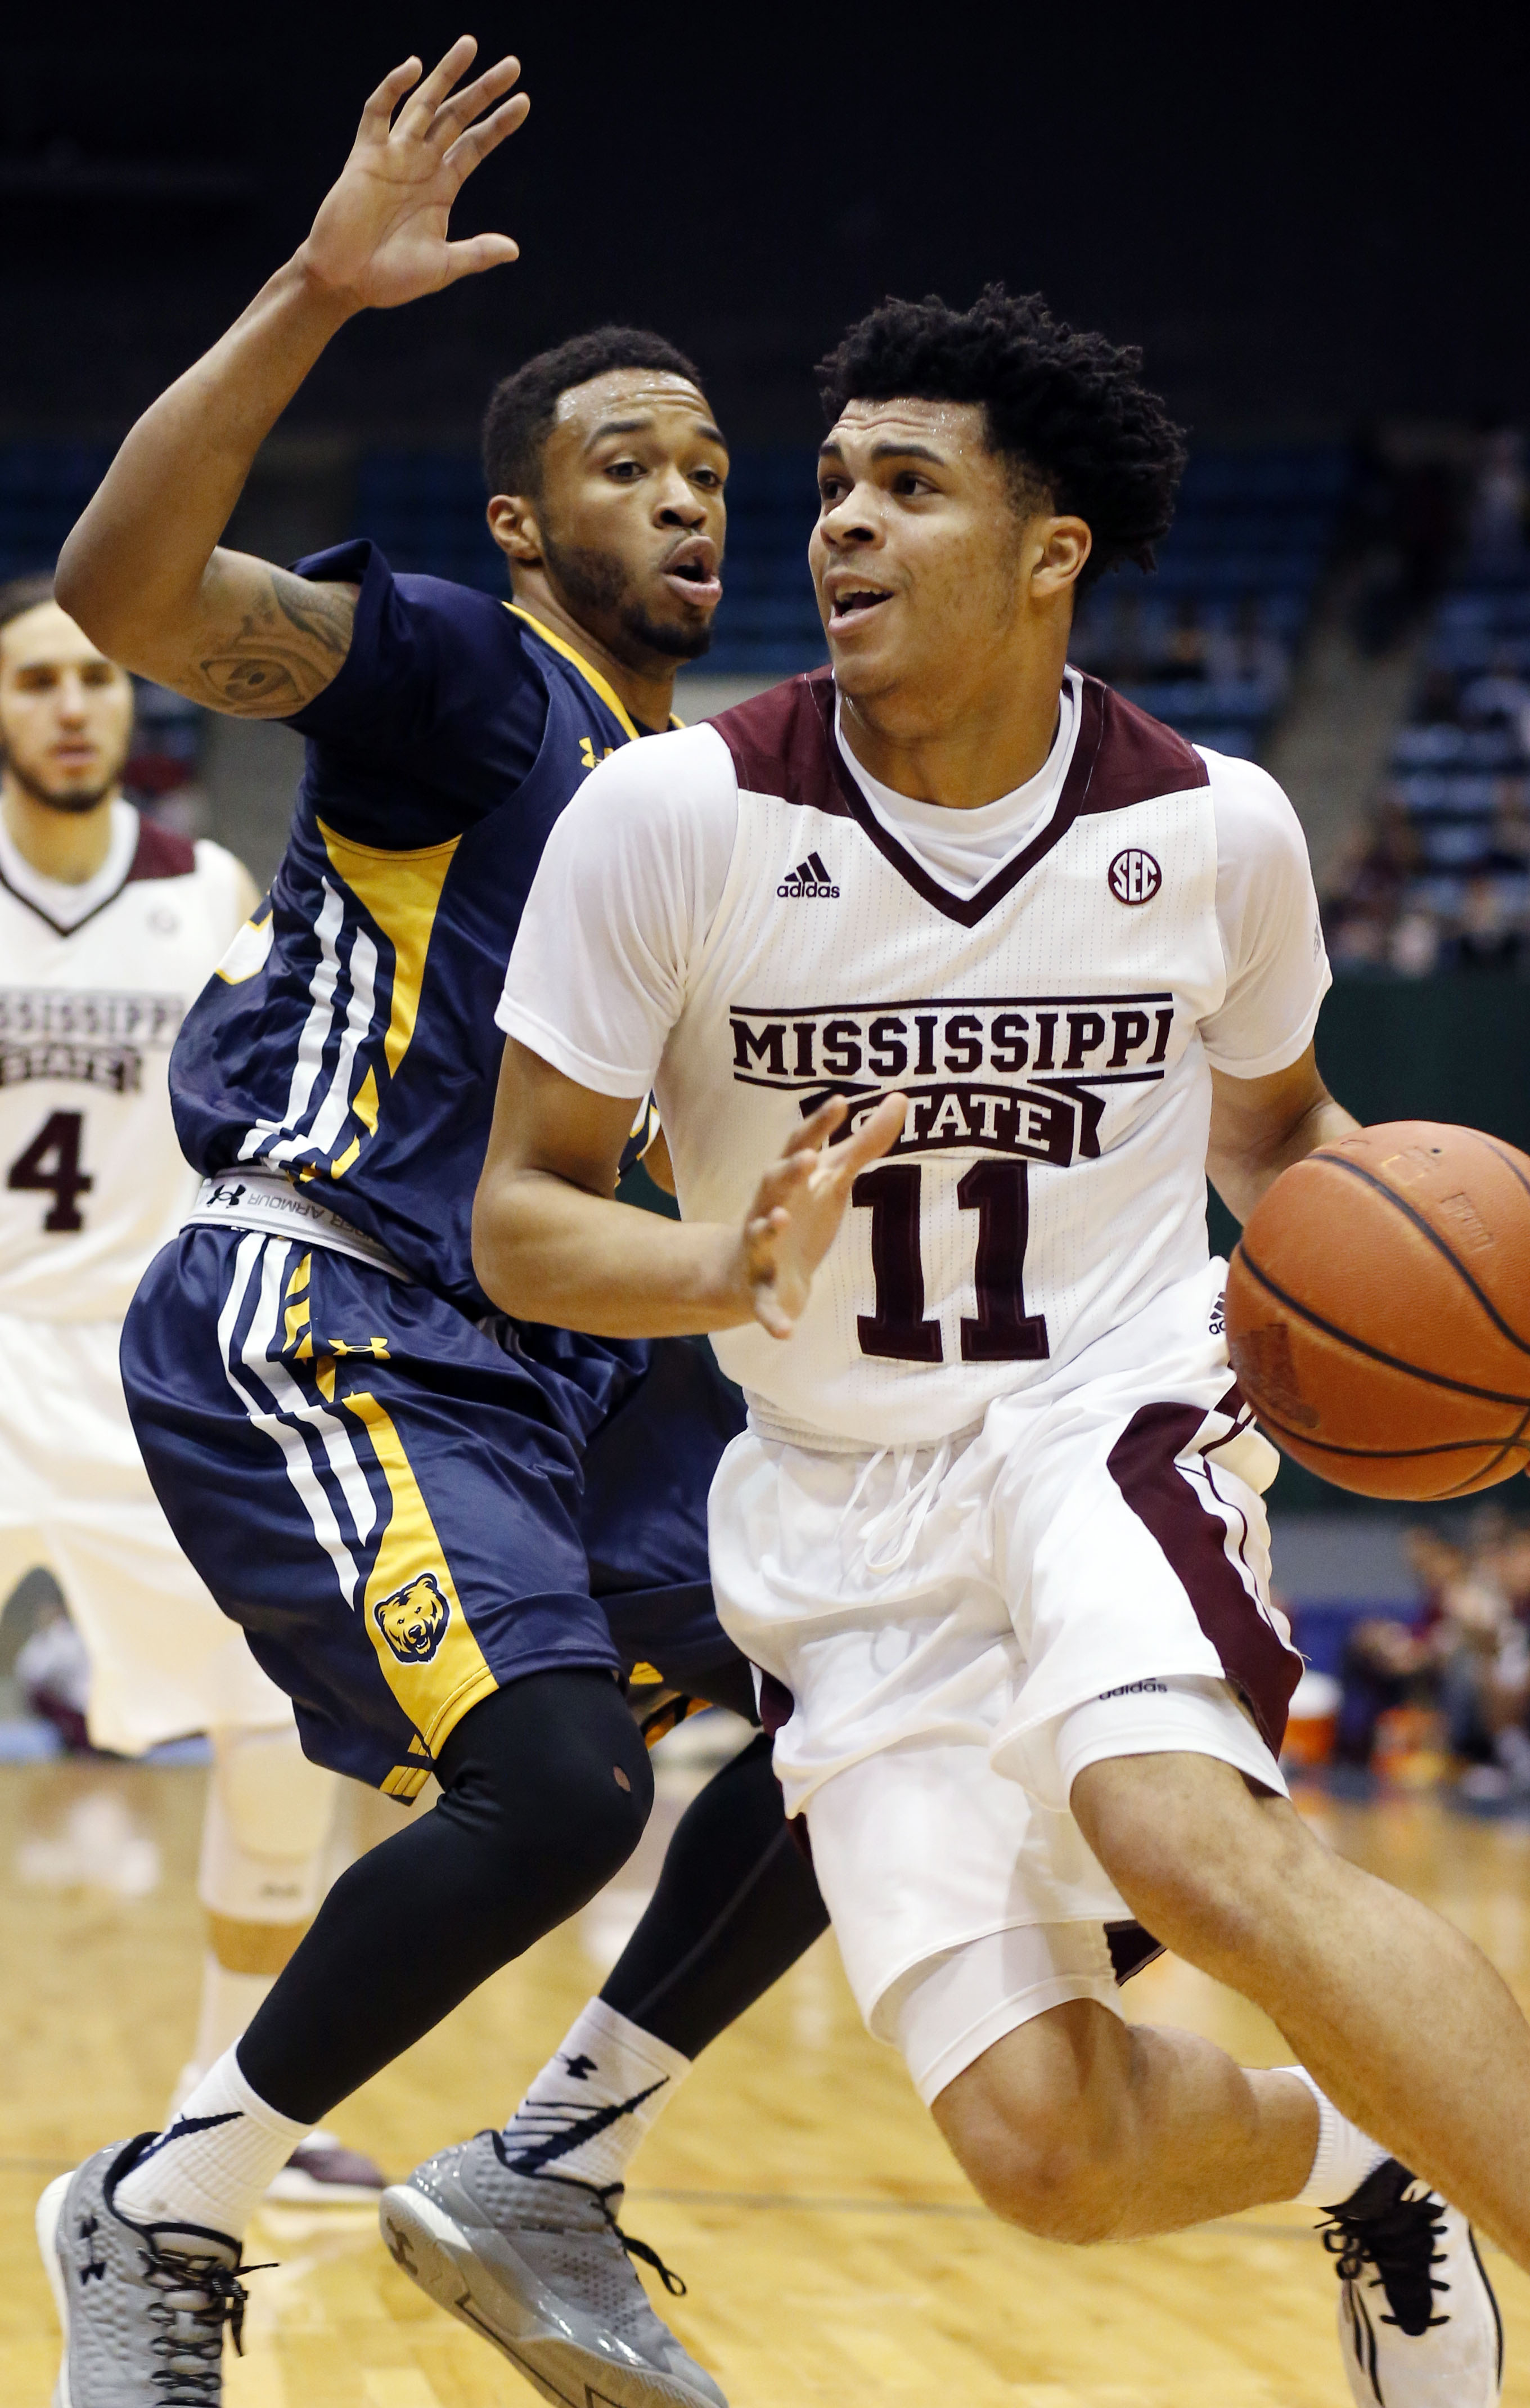 Mississippi State guard Quinndary Weatherspoon (11) dribbles past Northern Colorado guard Dallas Anglin during the first half of an NCAA college basketball game in Jackson, Miss., Wednesday, Dec. 23, 2015. (AP Photo/Rogelio V. Solis)